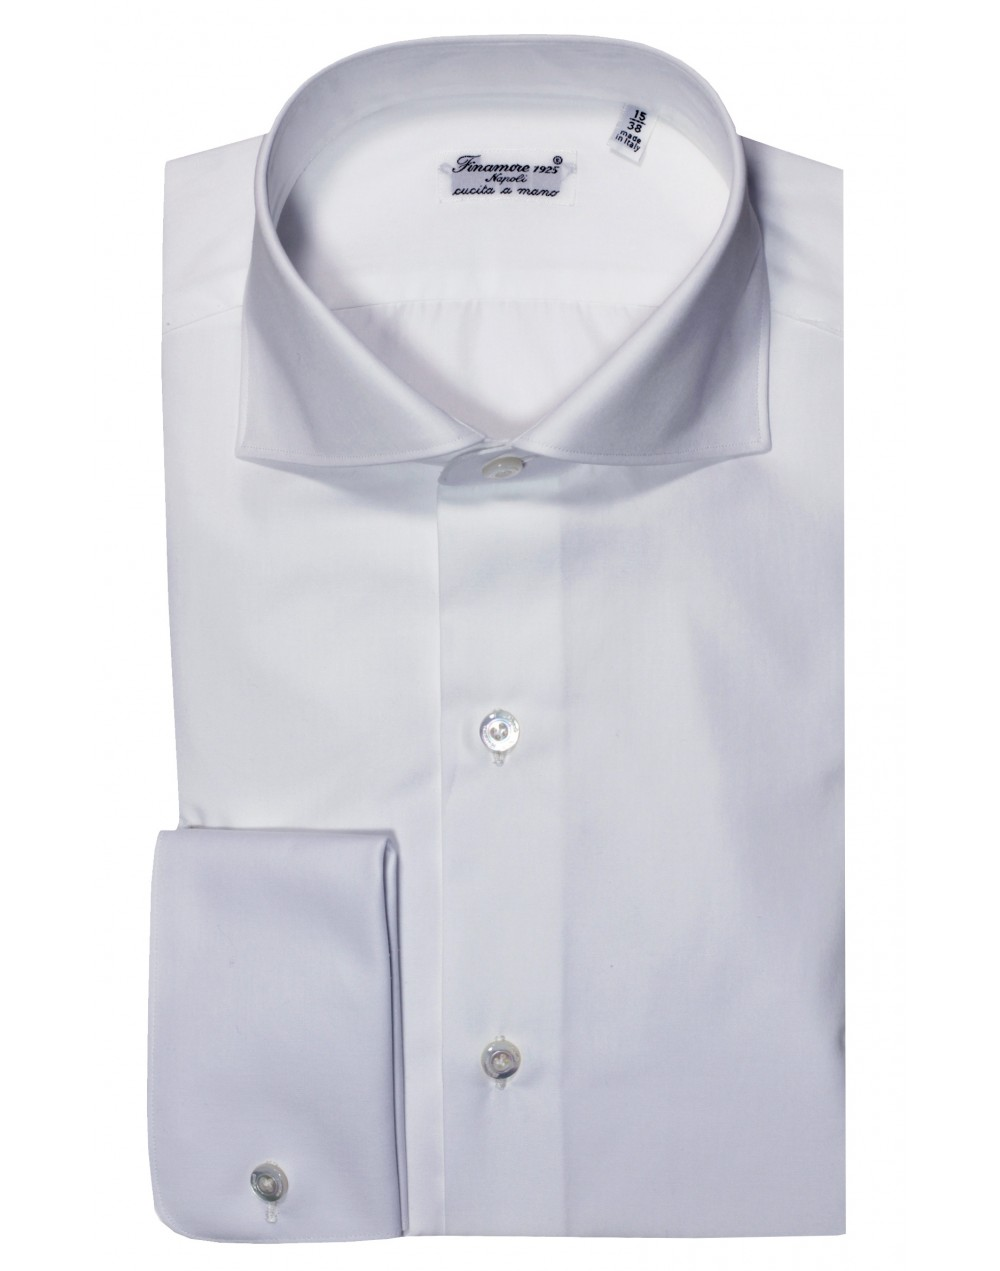 Dress shirt Milano14000101 frenc cuff